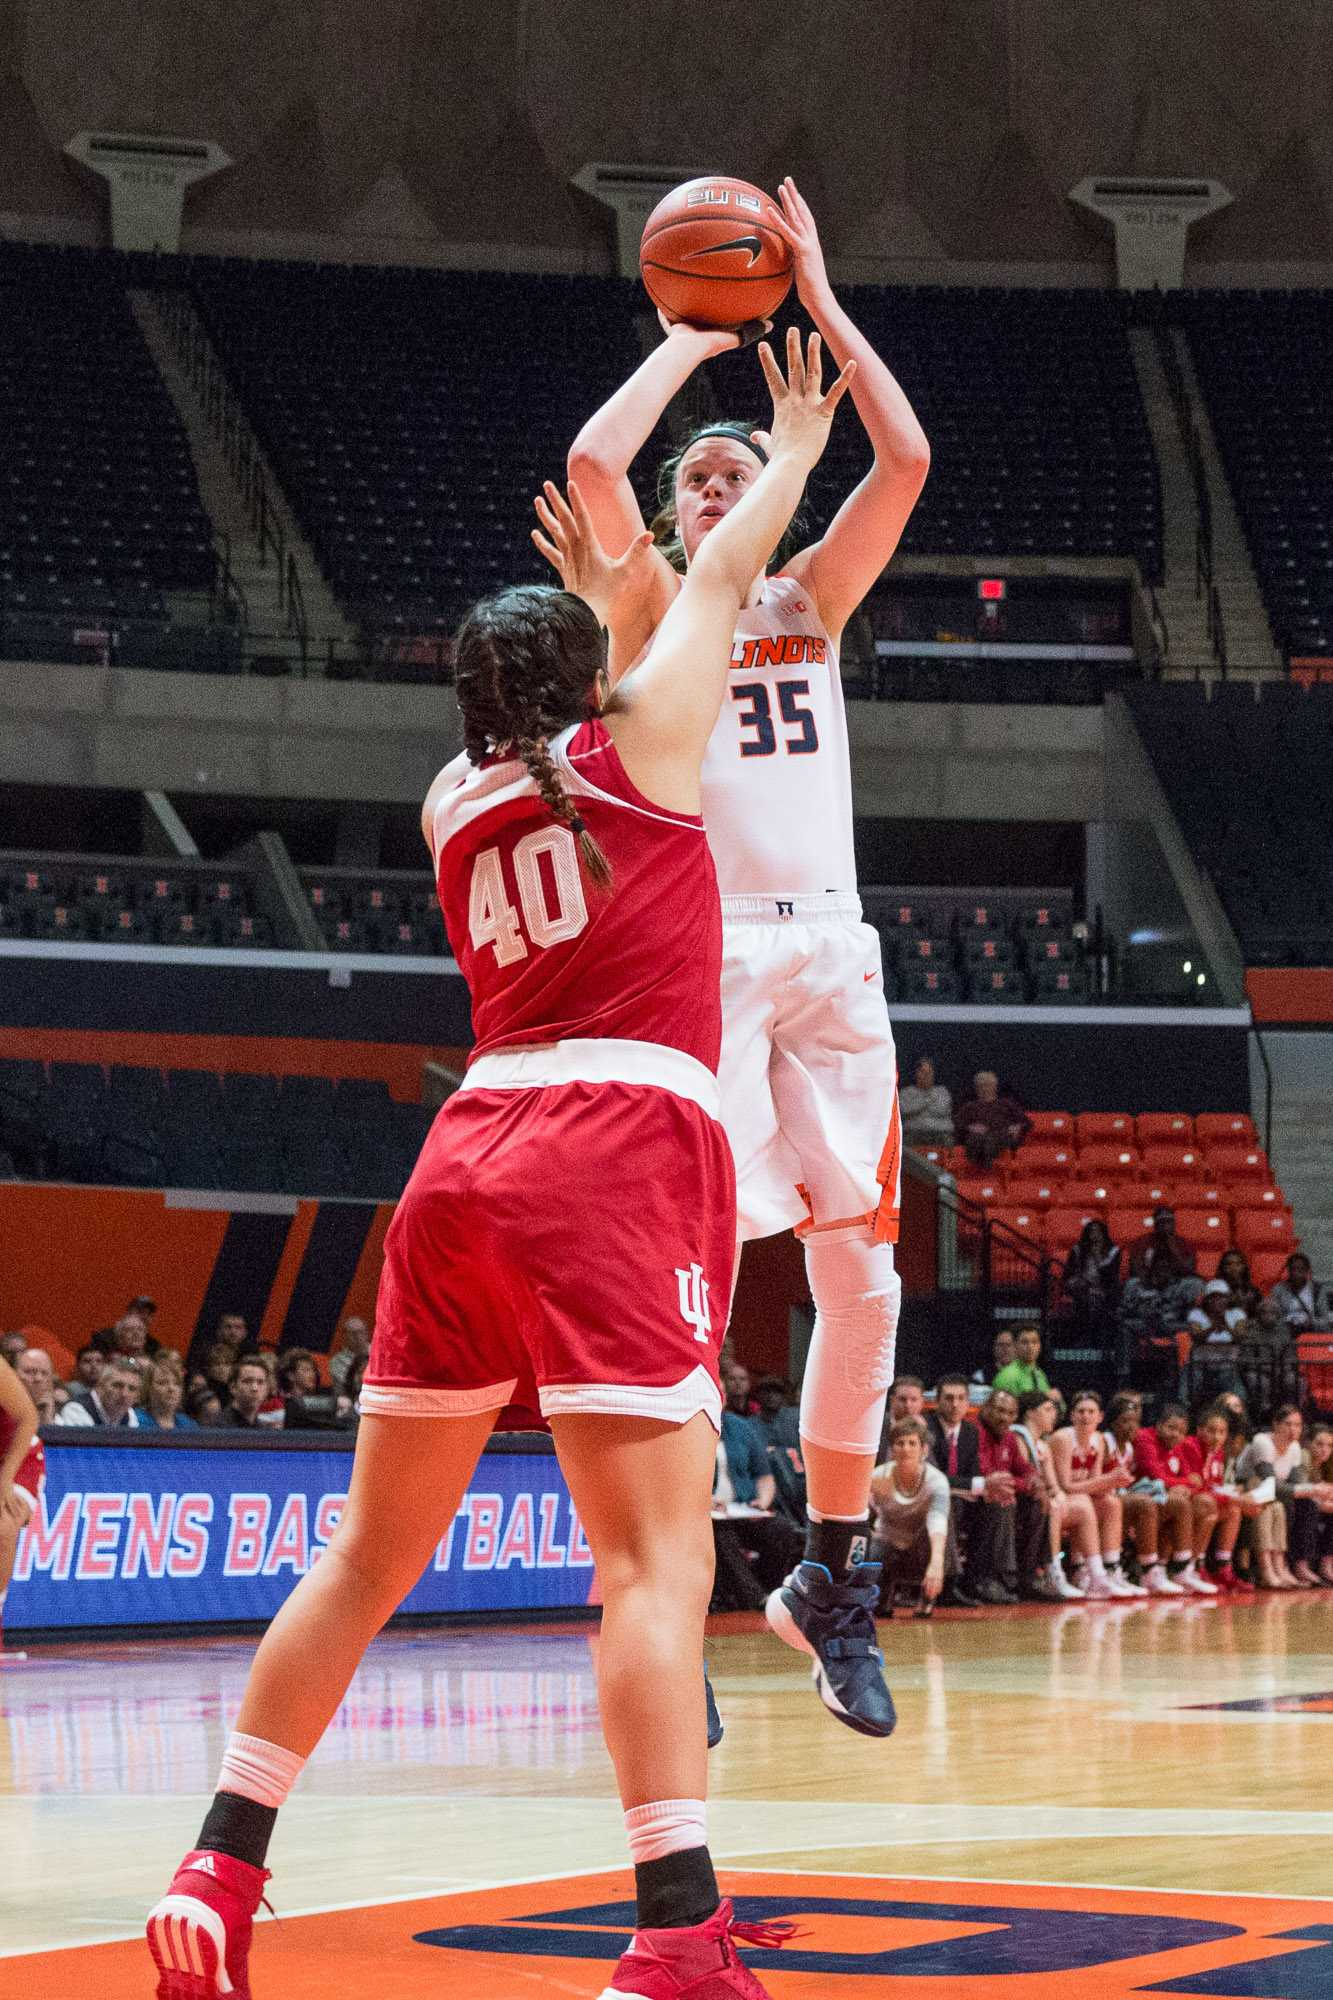 Illinois' Alex Wittinger shoots a jumper over Indiana's Lyndsay Leikem during the game against Indiana at the State Farm Center on February 10. The Illini lost 70-68.